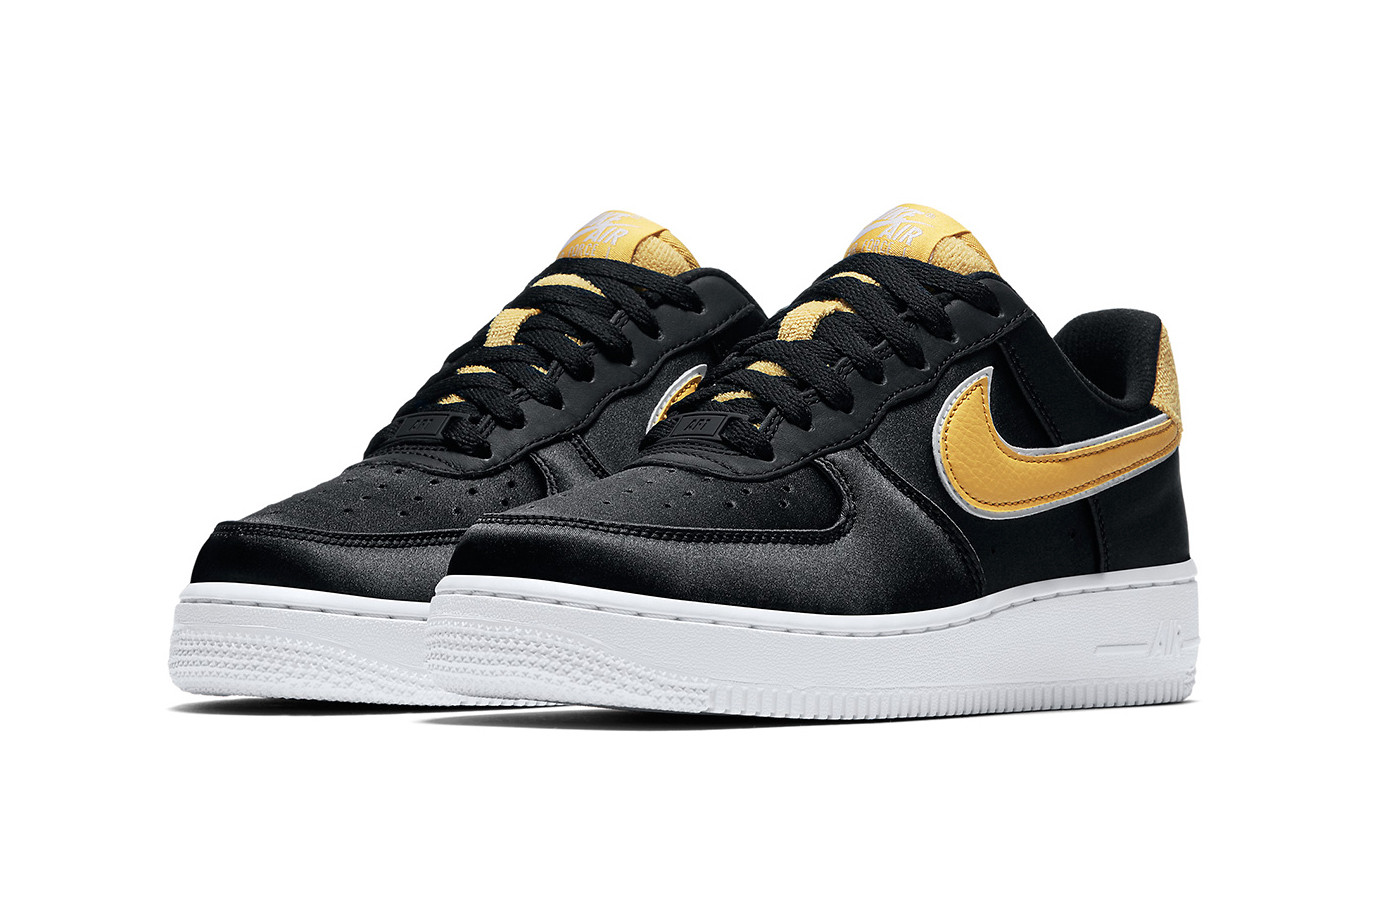 Nike\u0027s Air Force 1 Low Gets Elevated in Satin